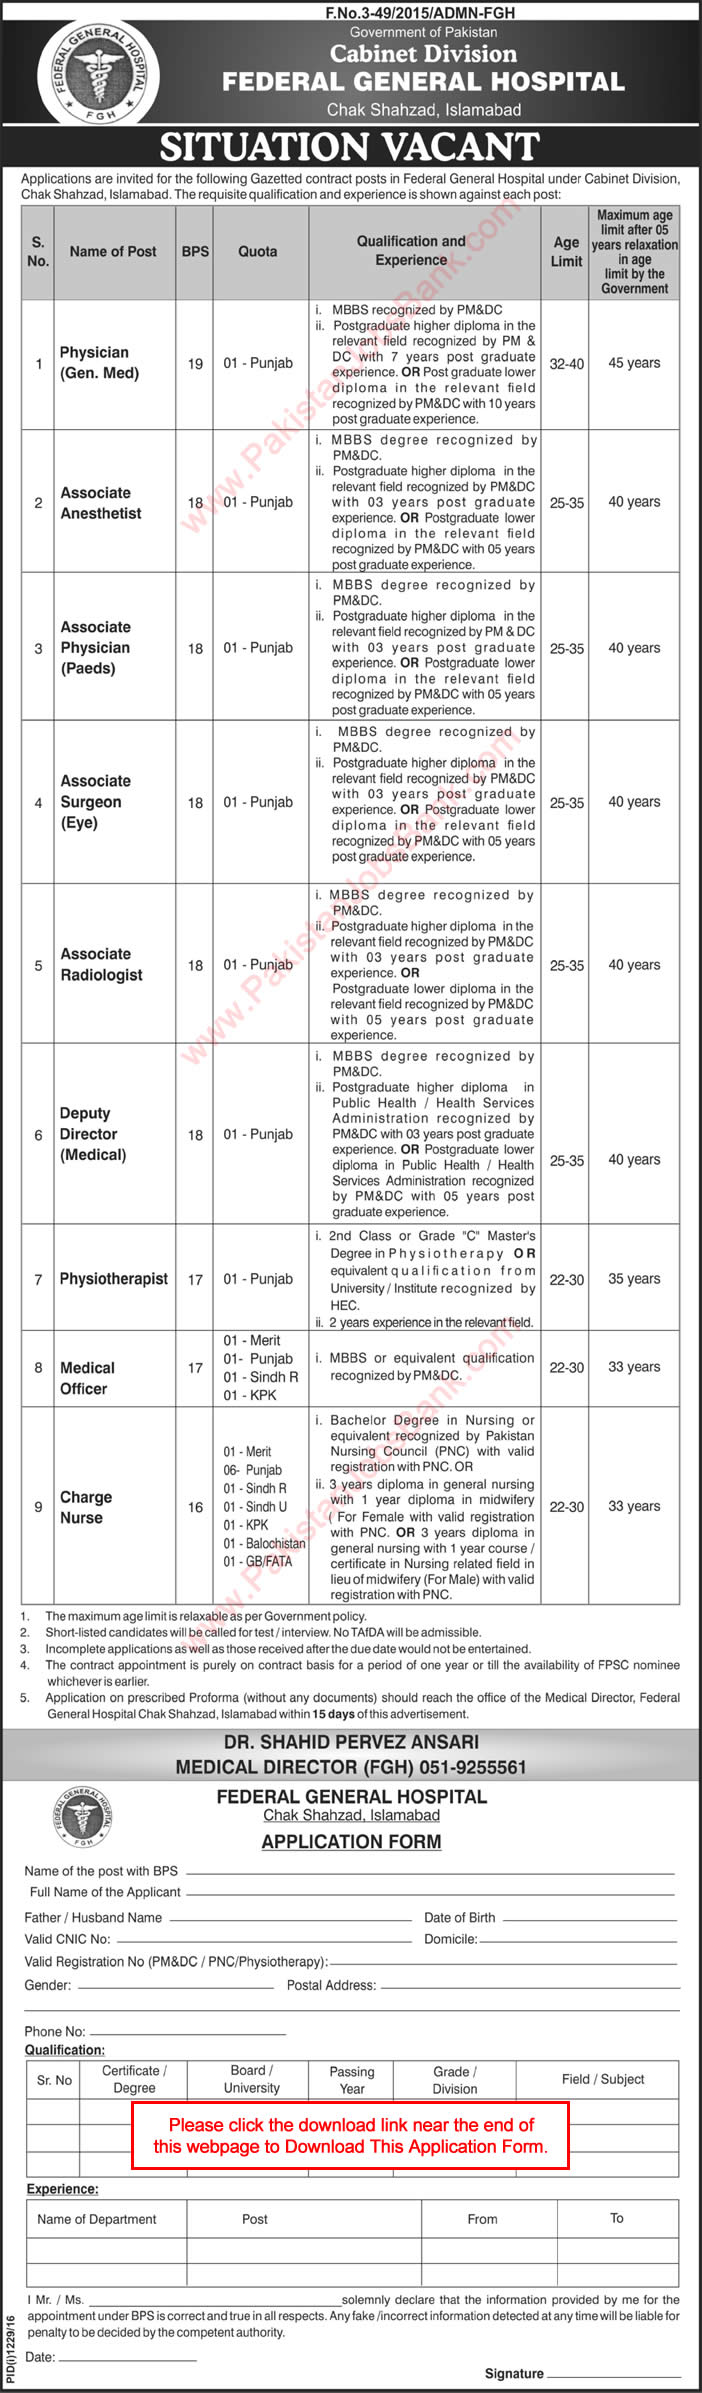 Federal General Hospital Islamabad Jobs September 2016 Application Form Charge Nurses, Medical Officers & Others Latest